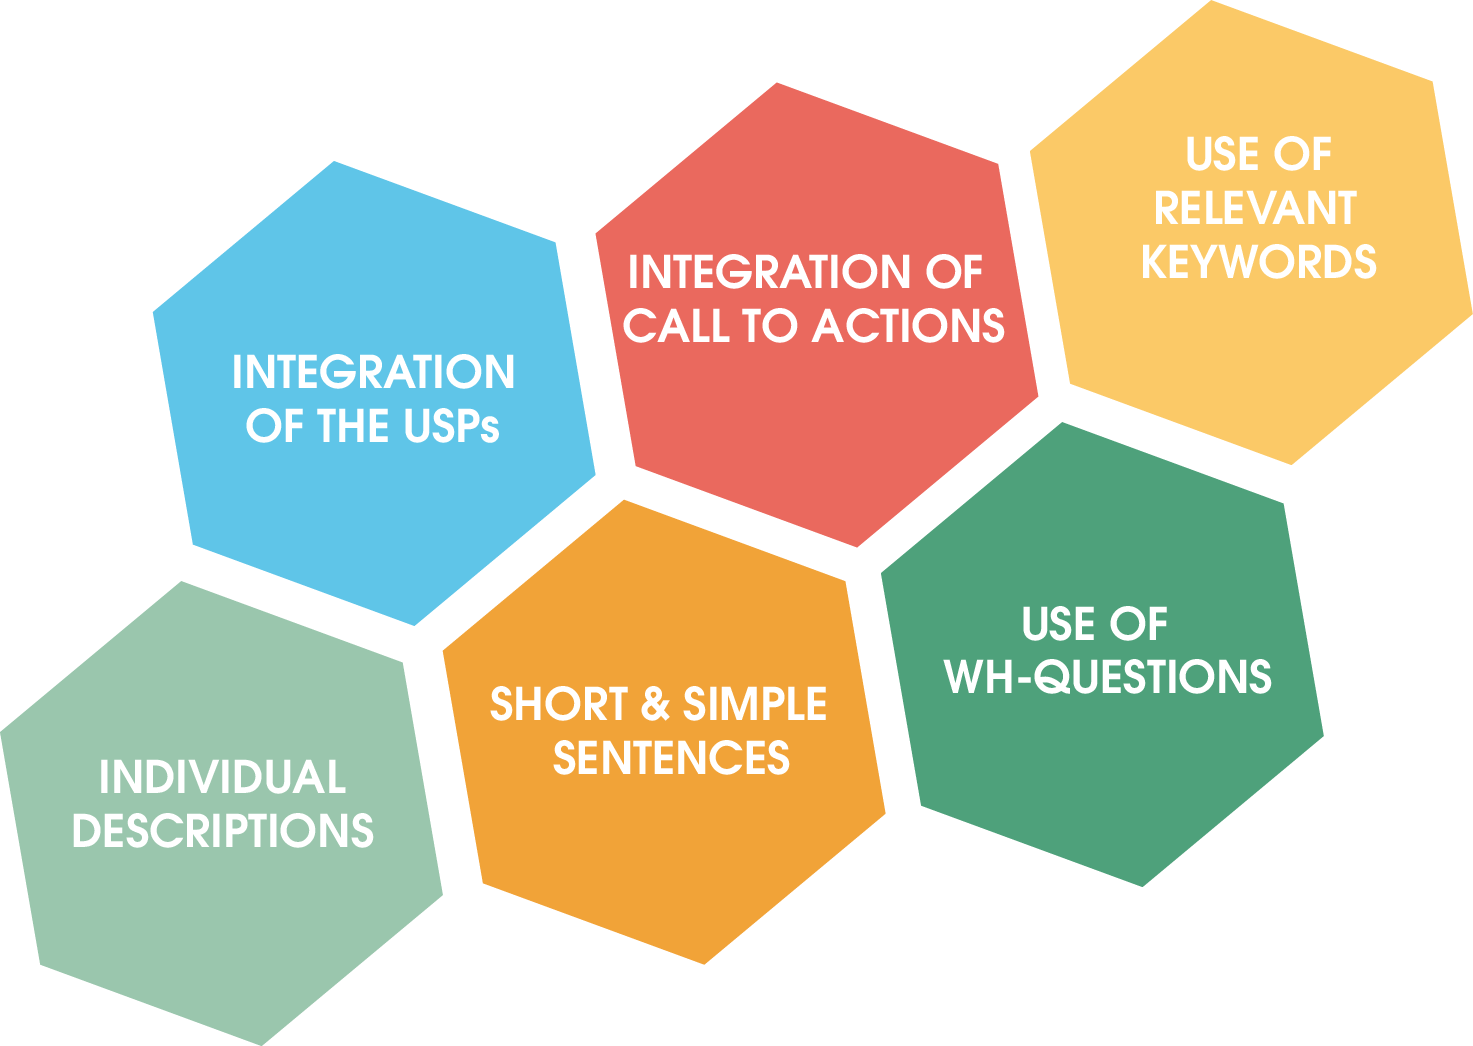 At a glance: The requirements when creating the Description: - Integration of USPs - Individual descriptions - Integration of call to actions - Short, simple sentences - Use of relevant keywords - Use of WH-questions